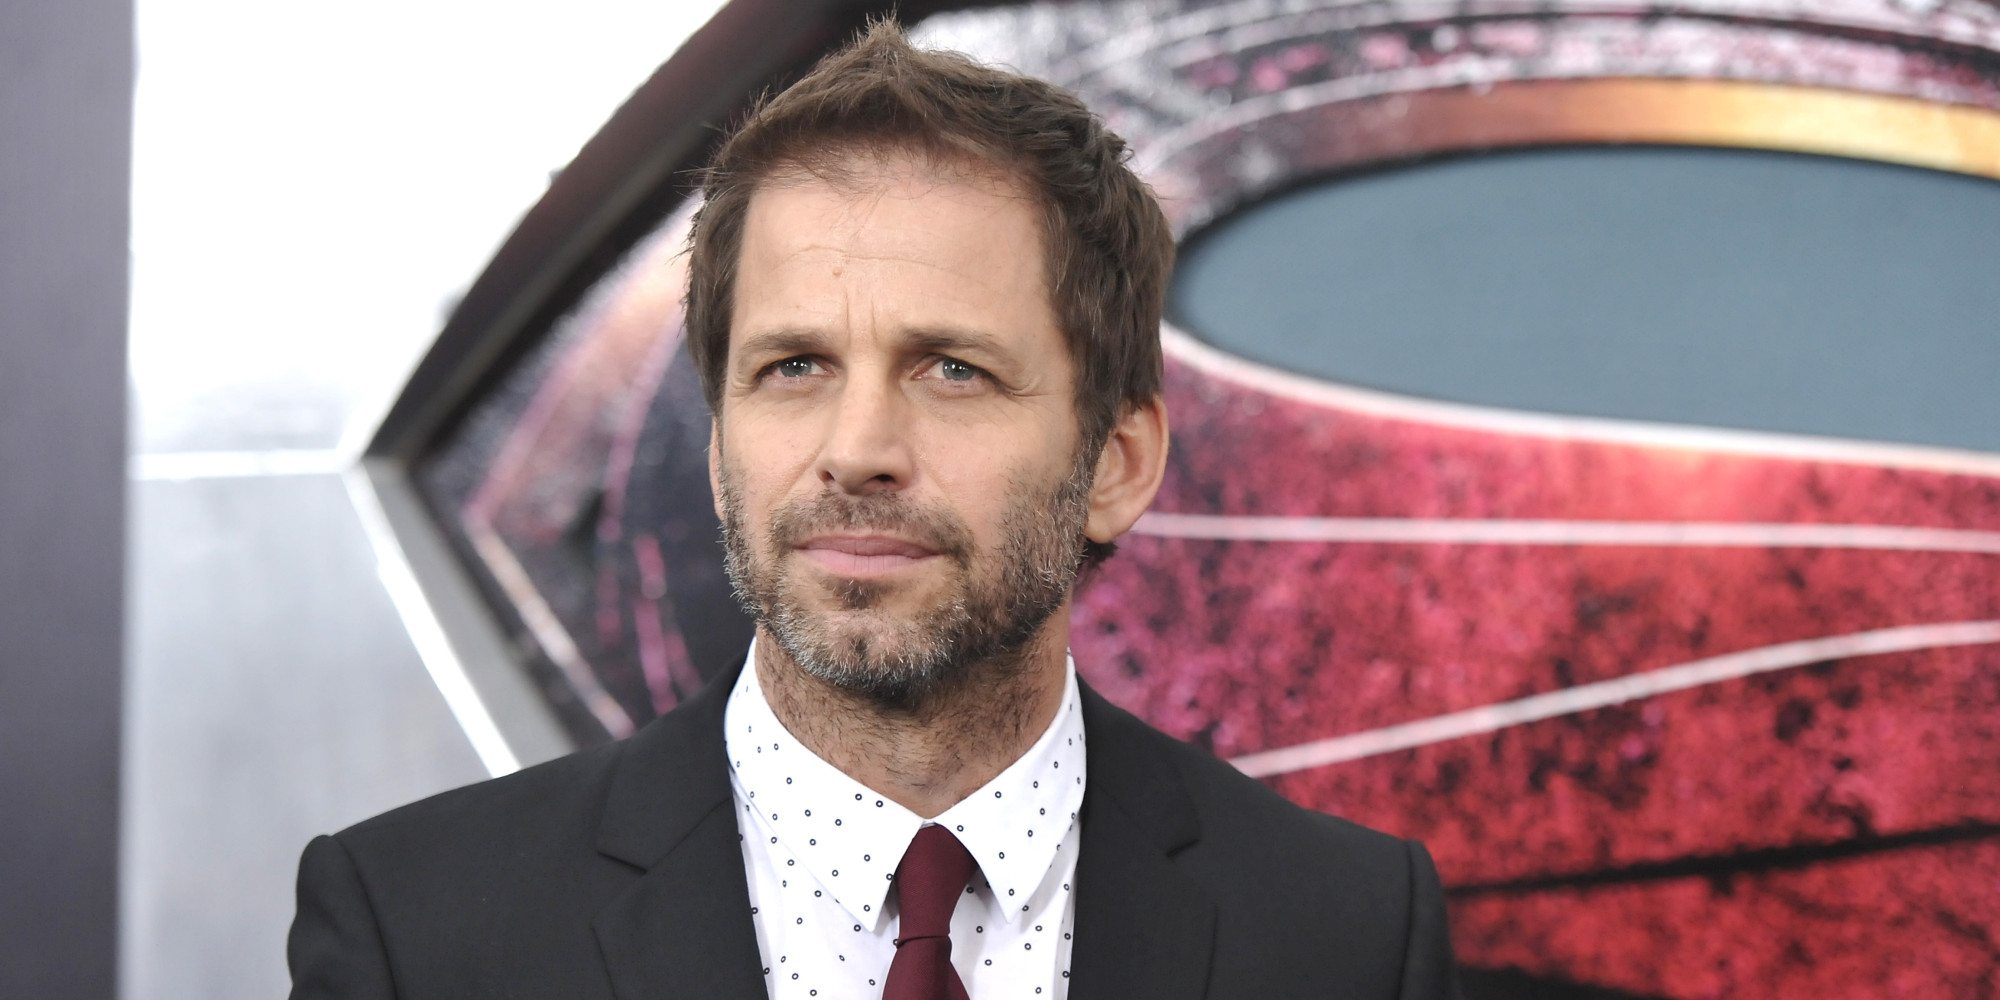 Snarcasm: The Director of Batman v Superman is Way Smarter Than Us